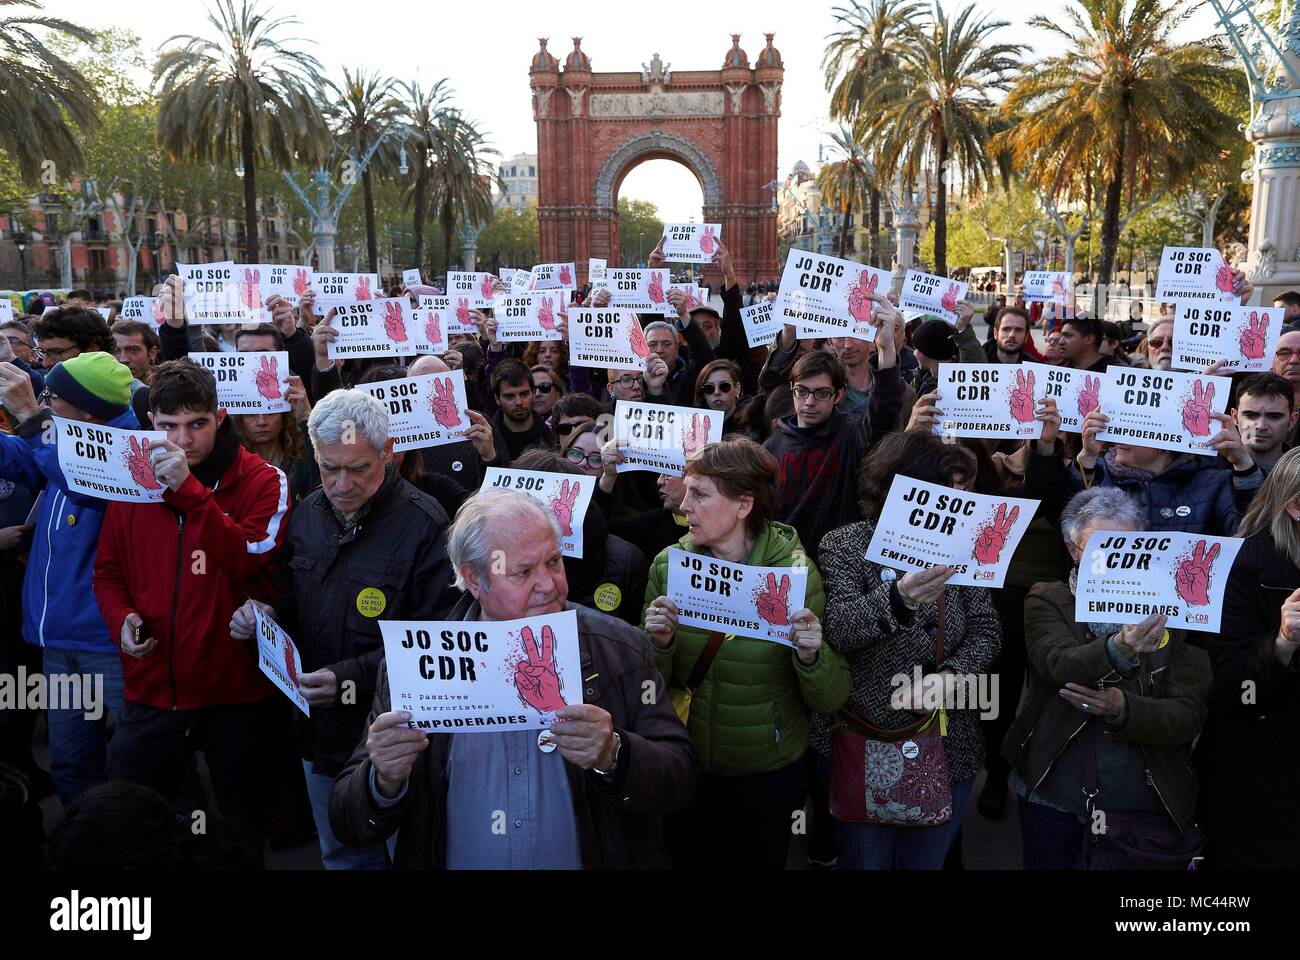 People rally to suppor the Republic's Defense Committees in Barcelona, Catalonia, Spain, 12 April 2018. EFE/Alejandro Garcia Stock Photo